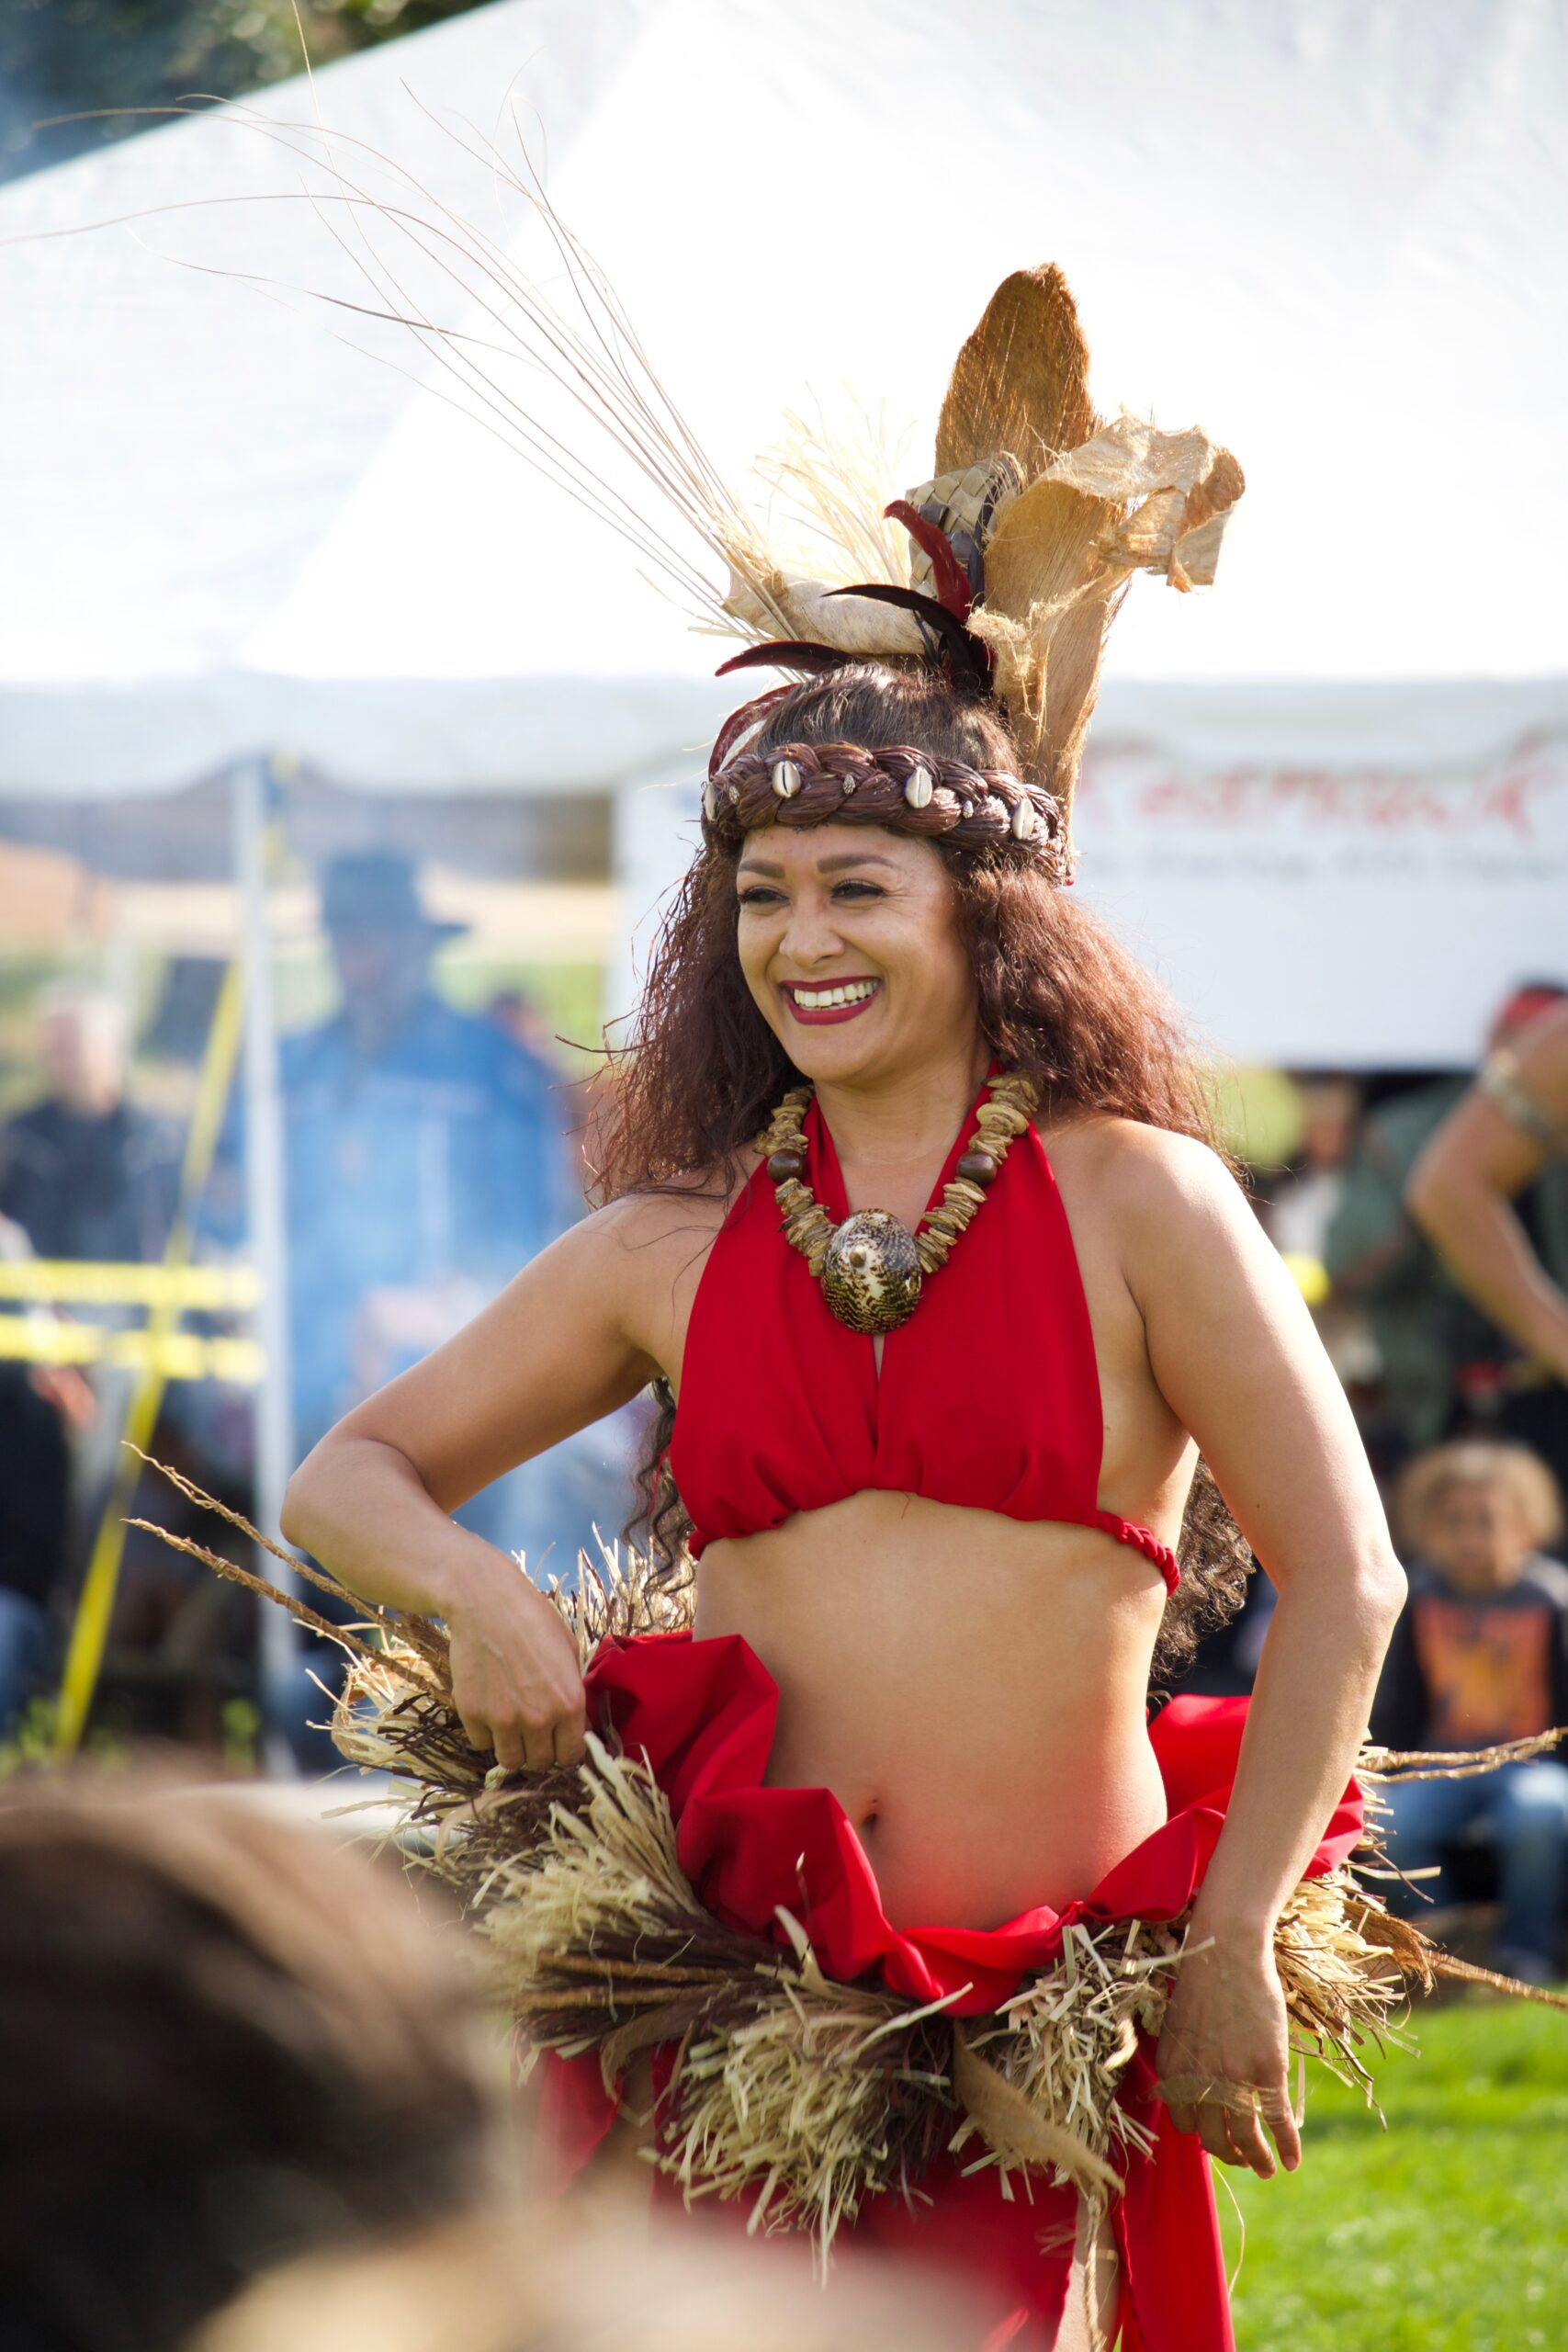 There is a variety of people, cultures, and ethnicities that make their way to this celebration of Indigenous peoples. From groups based in New York to people from around the world, communities come together for two days to celebrate being native and the beauty of their people and culture. Pictured in this photo is Kaina Quenga from her group Te Ao Mana in New York, run by Hawaiians from Hawaiʻi who teach Tahitian dance and bring a taste of the islands to the city. It's important to honor all the different Indigenous peoples from around the world because we are all in this together. It takes people coming together to honor, respect, and understand each other to make long-standing change. Connections made can last lifetimes and through different movements around the world, such as Standing Rock and Protect Mauna Kea. This support creates strong and perpetual bonds because it is rooted in the love for the land and wanting to protect it.